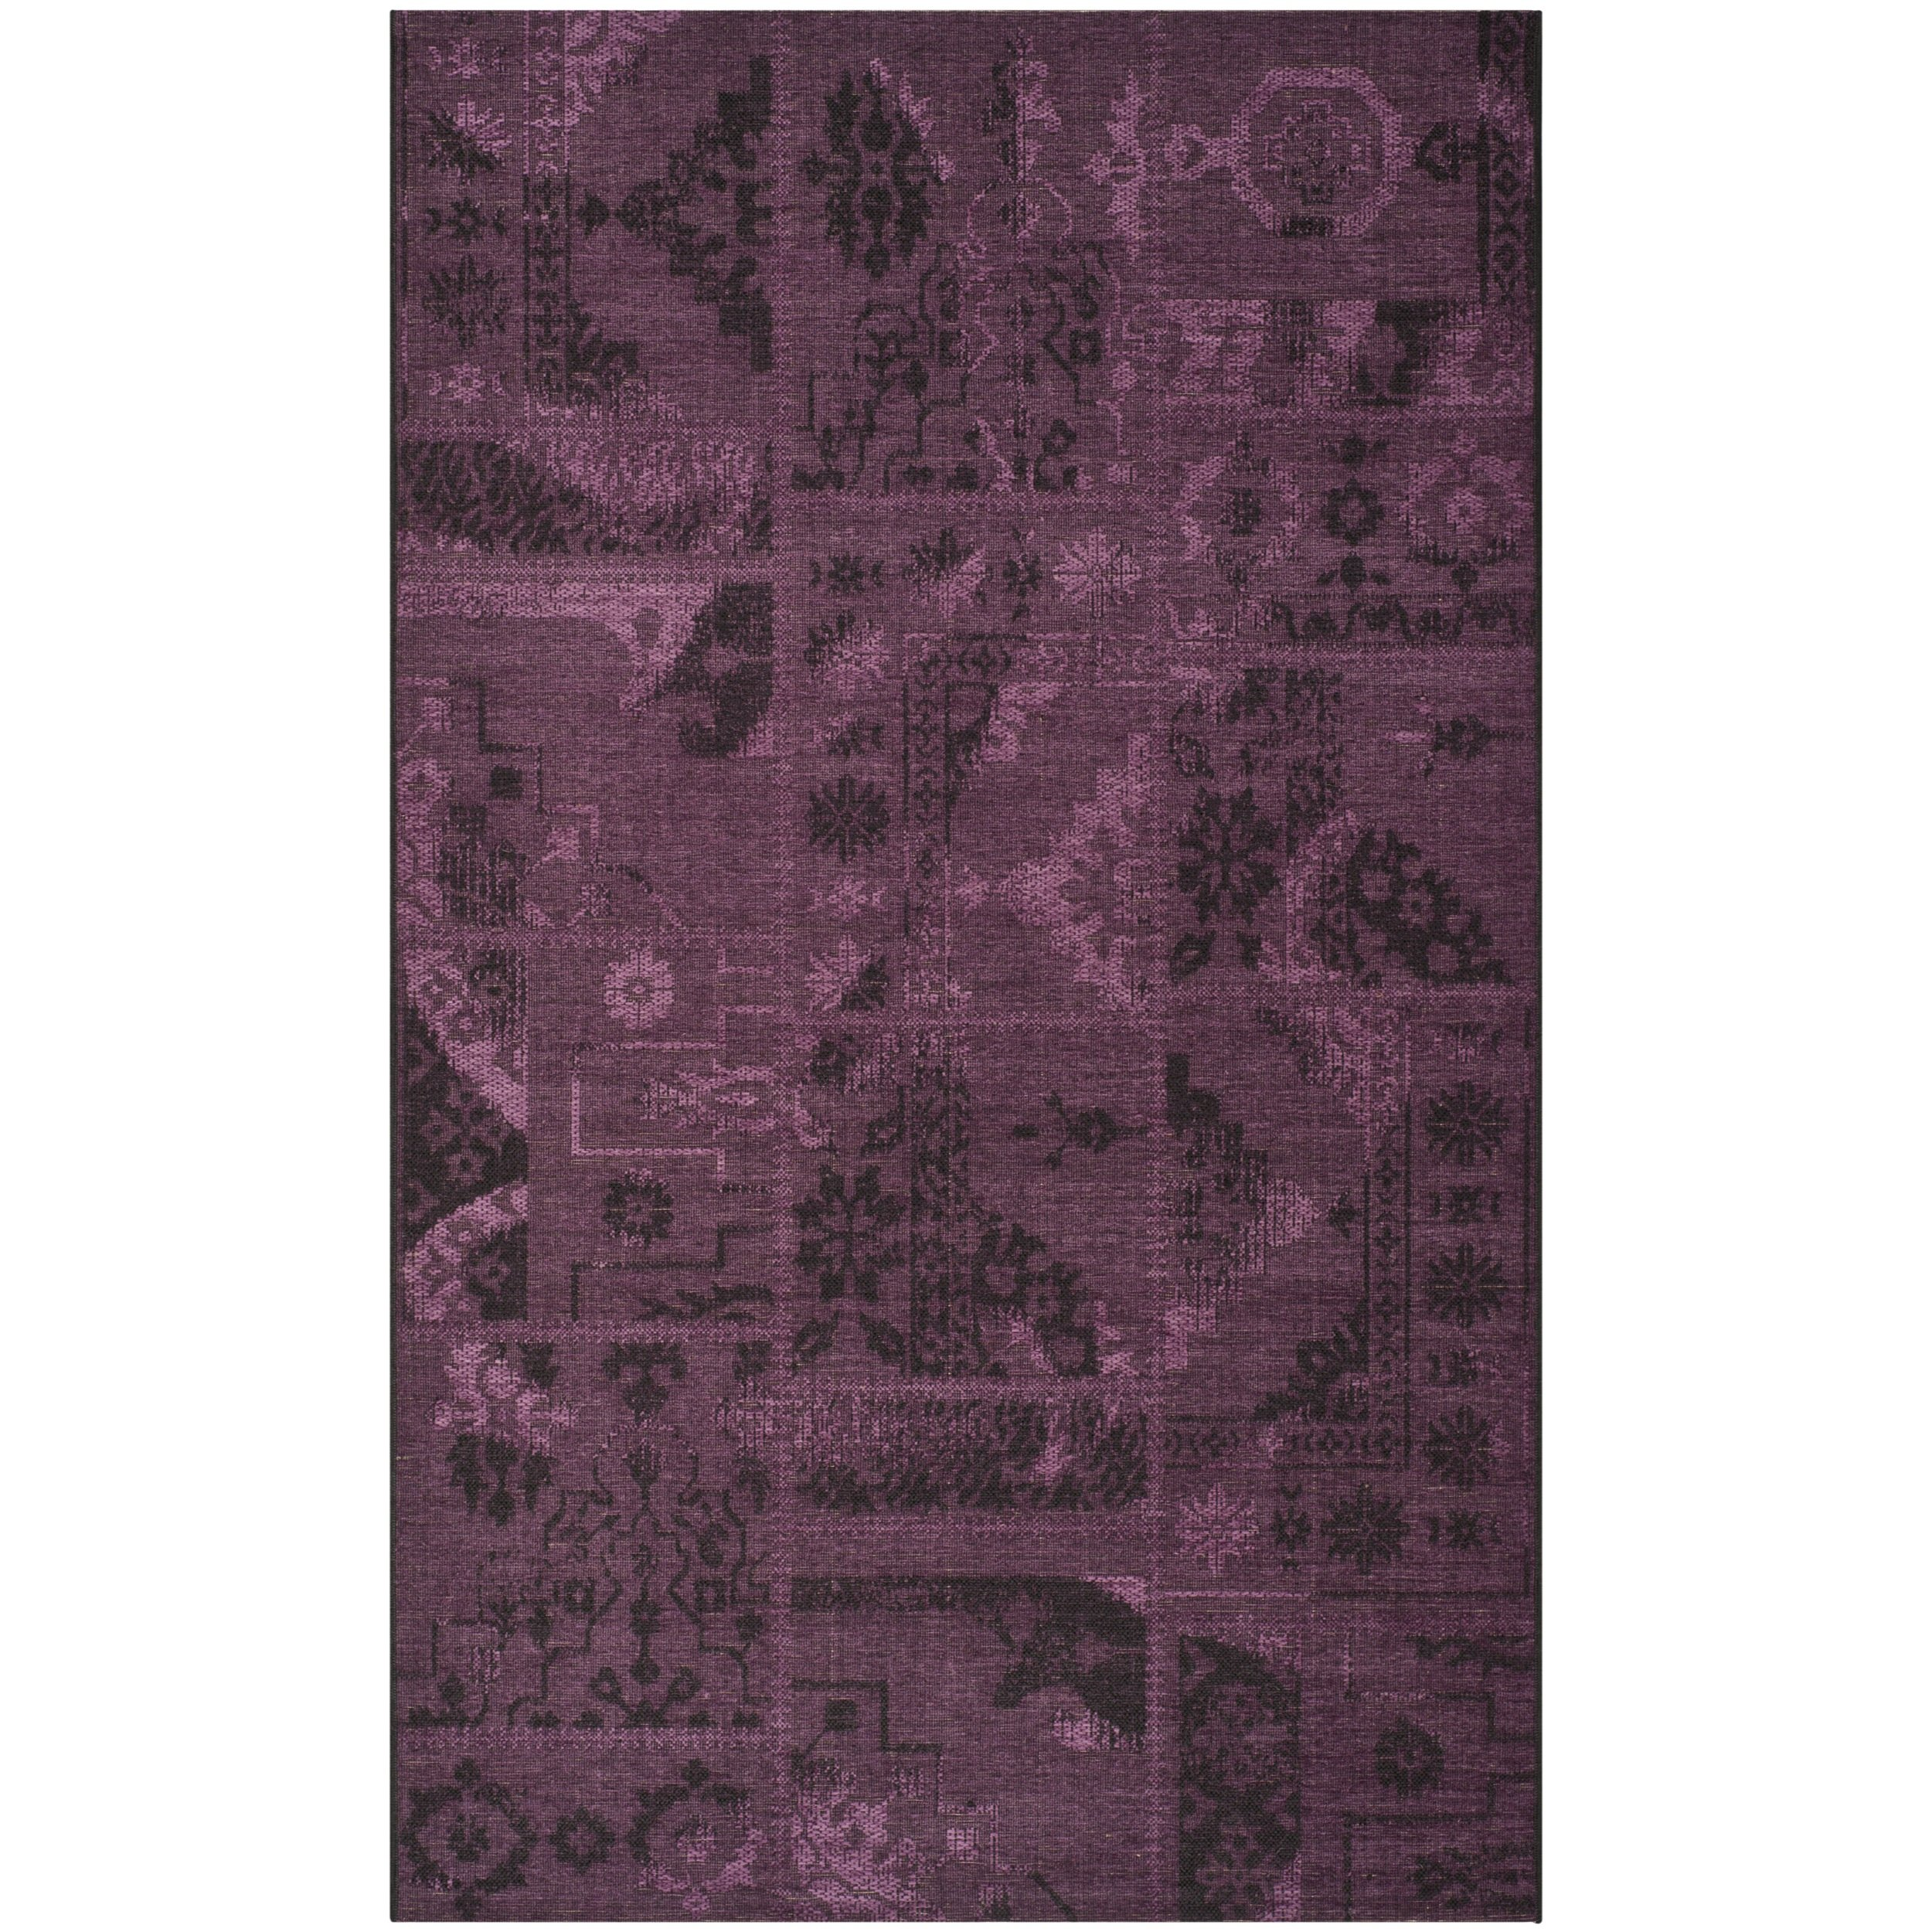 Safavieh Palazzo Collection PAL121-56C7 Black and Purple Area Rug (5' x 8') by Safavieh